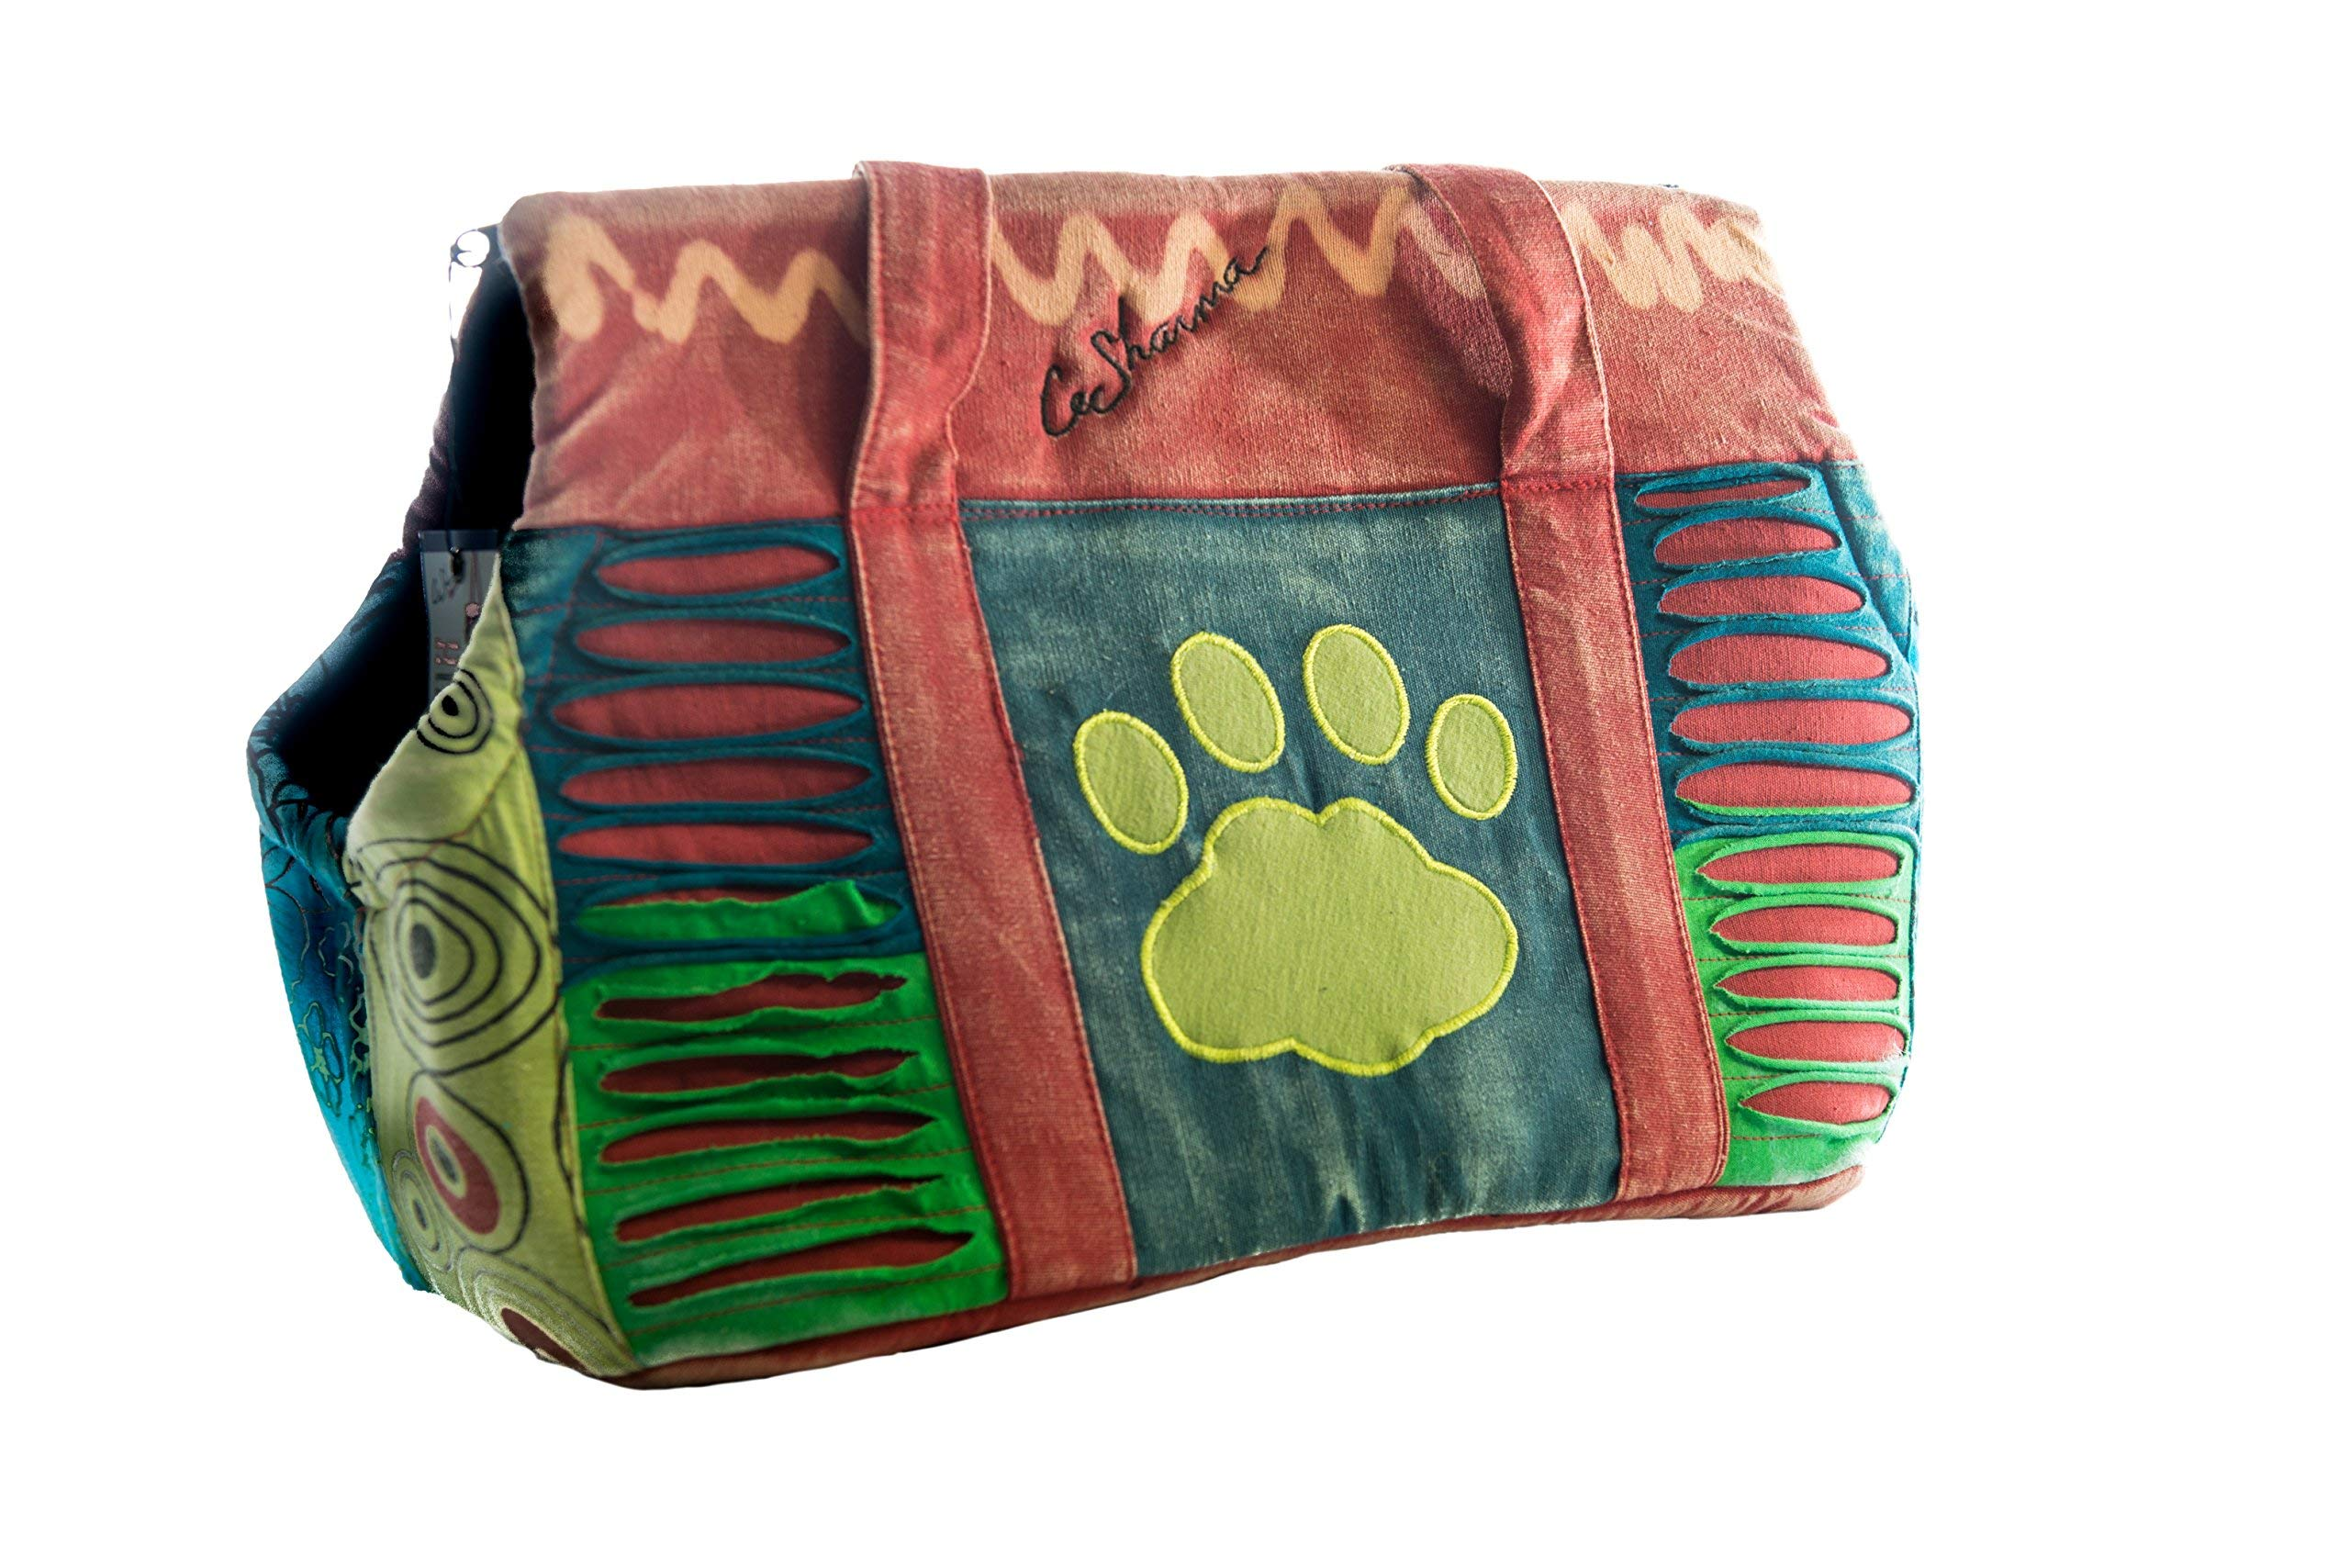 Le Sharma Cotton-Dog Carrier, Handmade with 100% Cotton, Stylish and Practical, Ideal for Small Dogs (LSFCC-01)